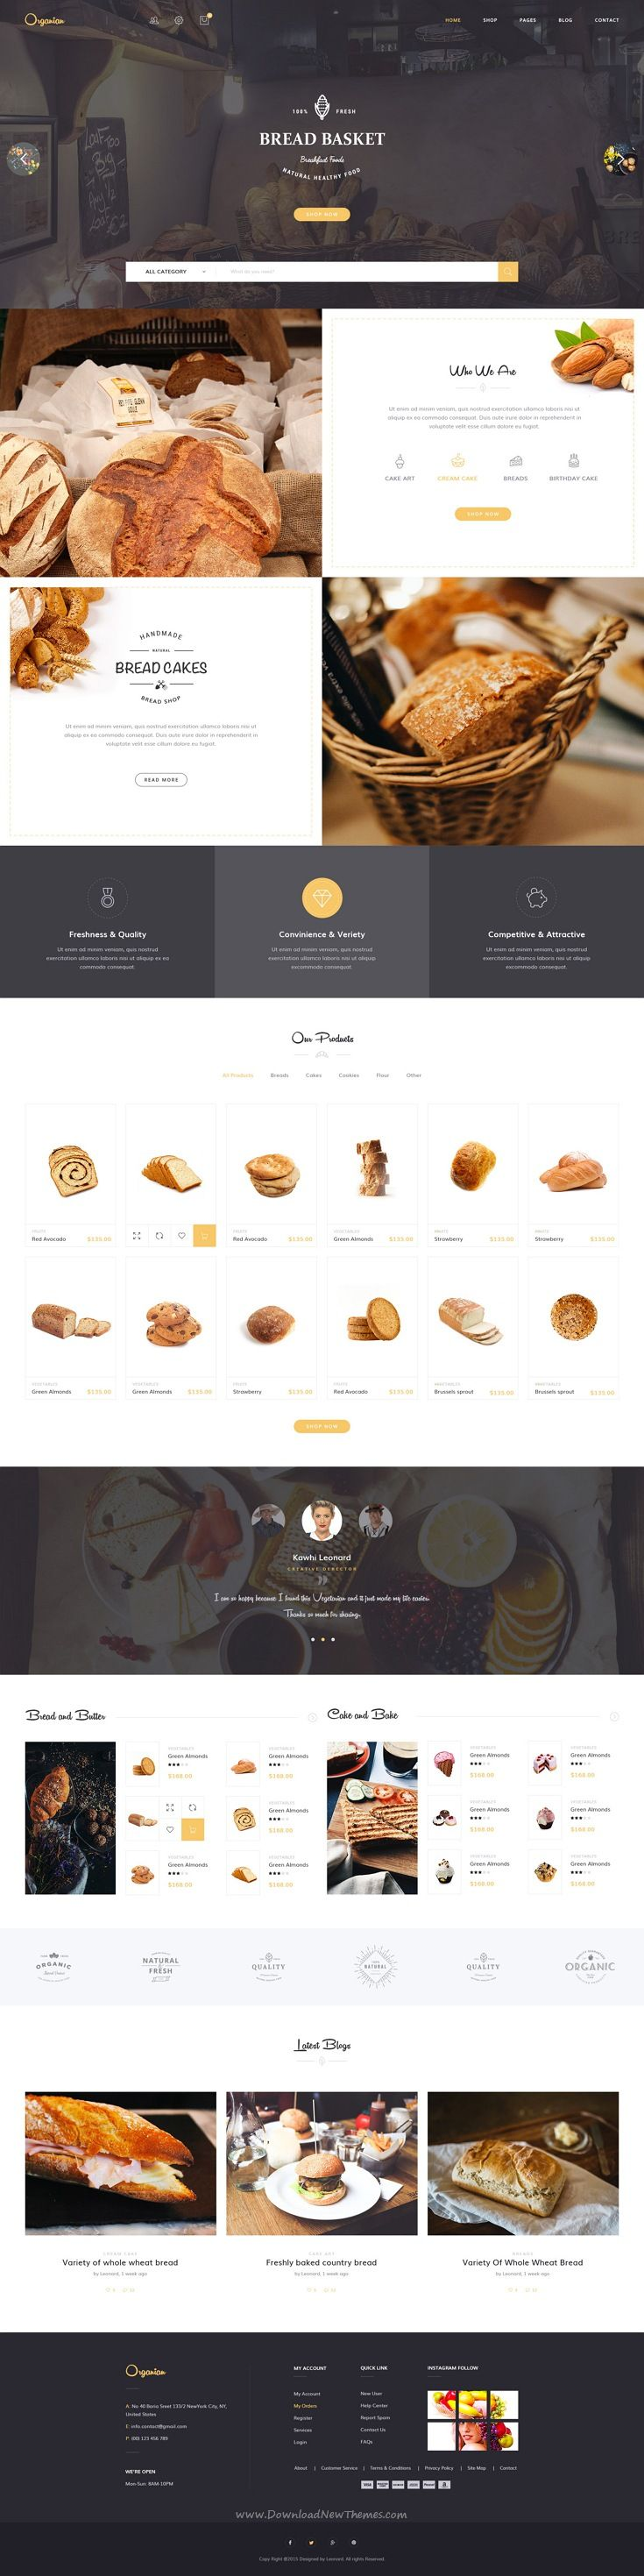 Organian Multiconcept Organic Store Psd Template Layouts